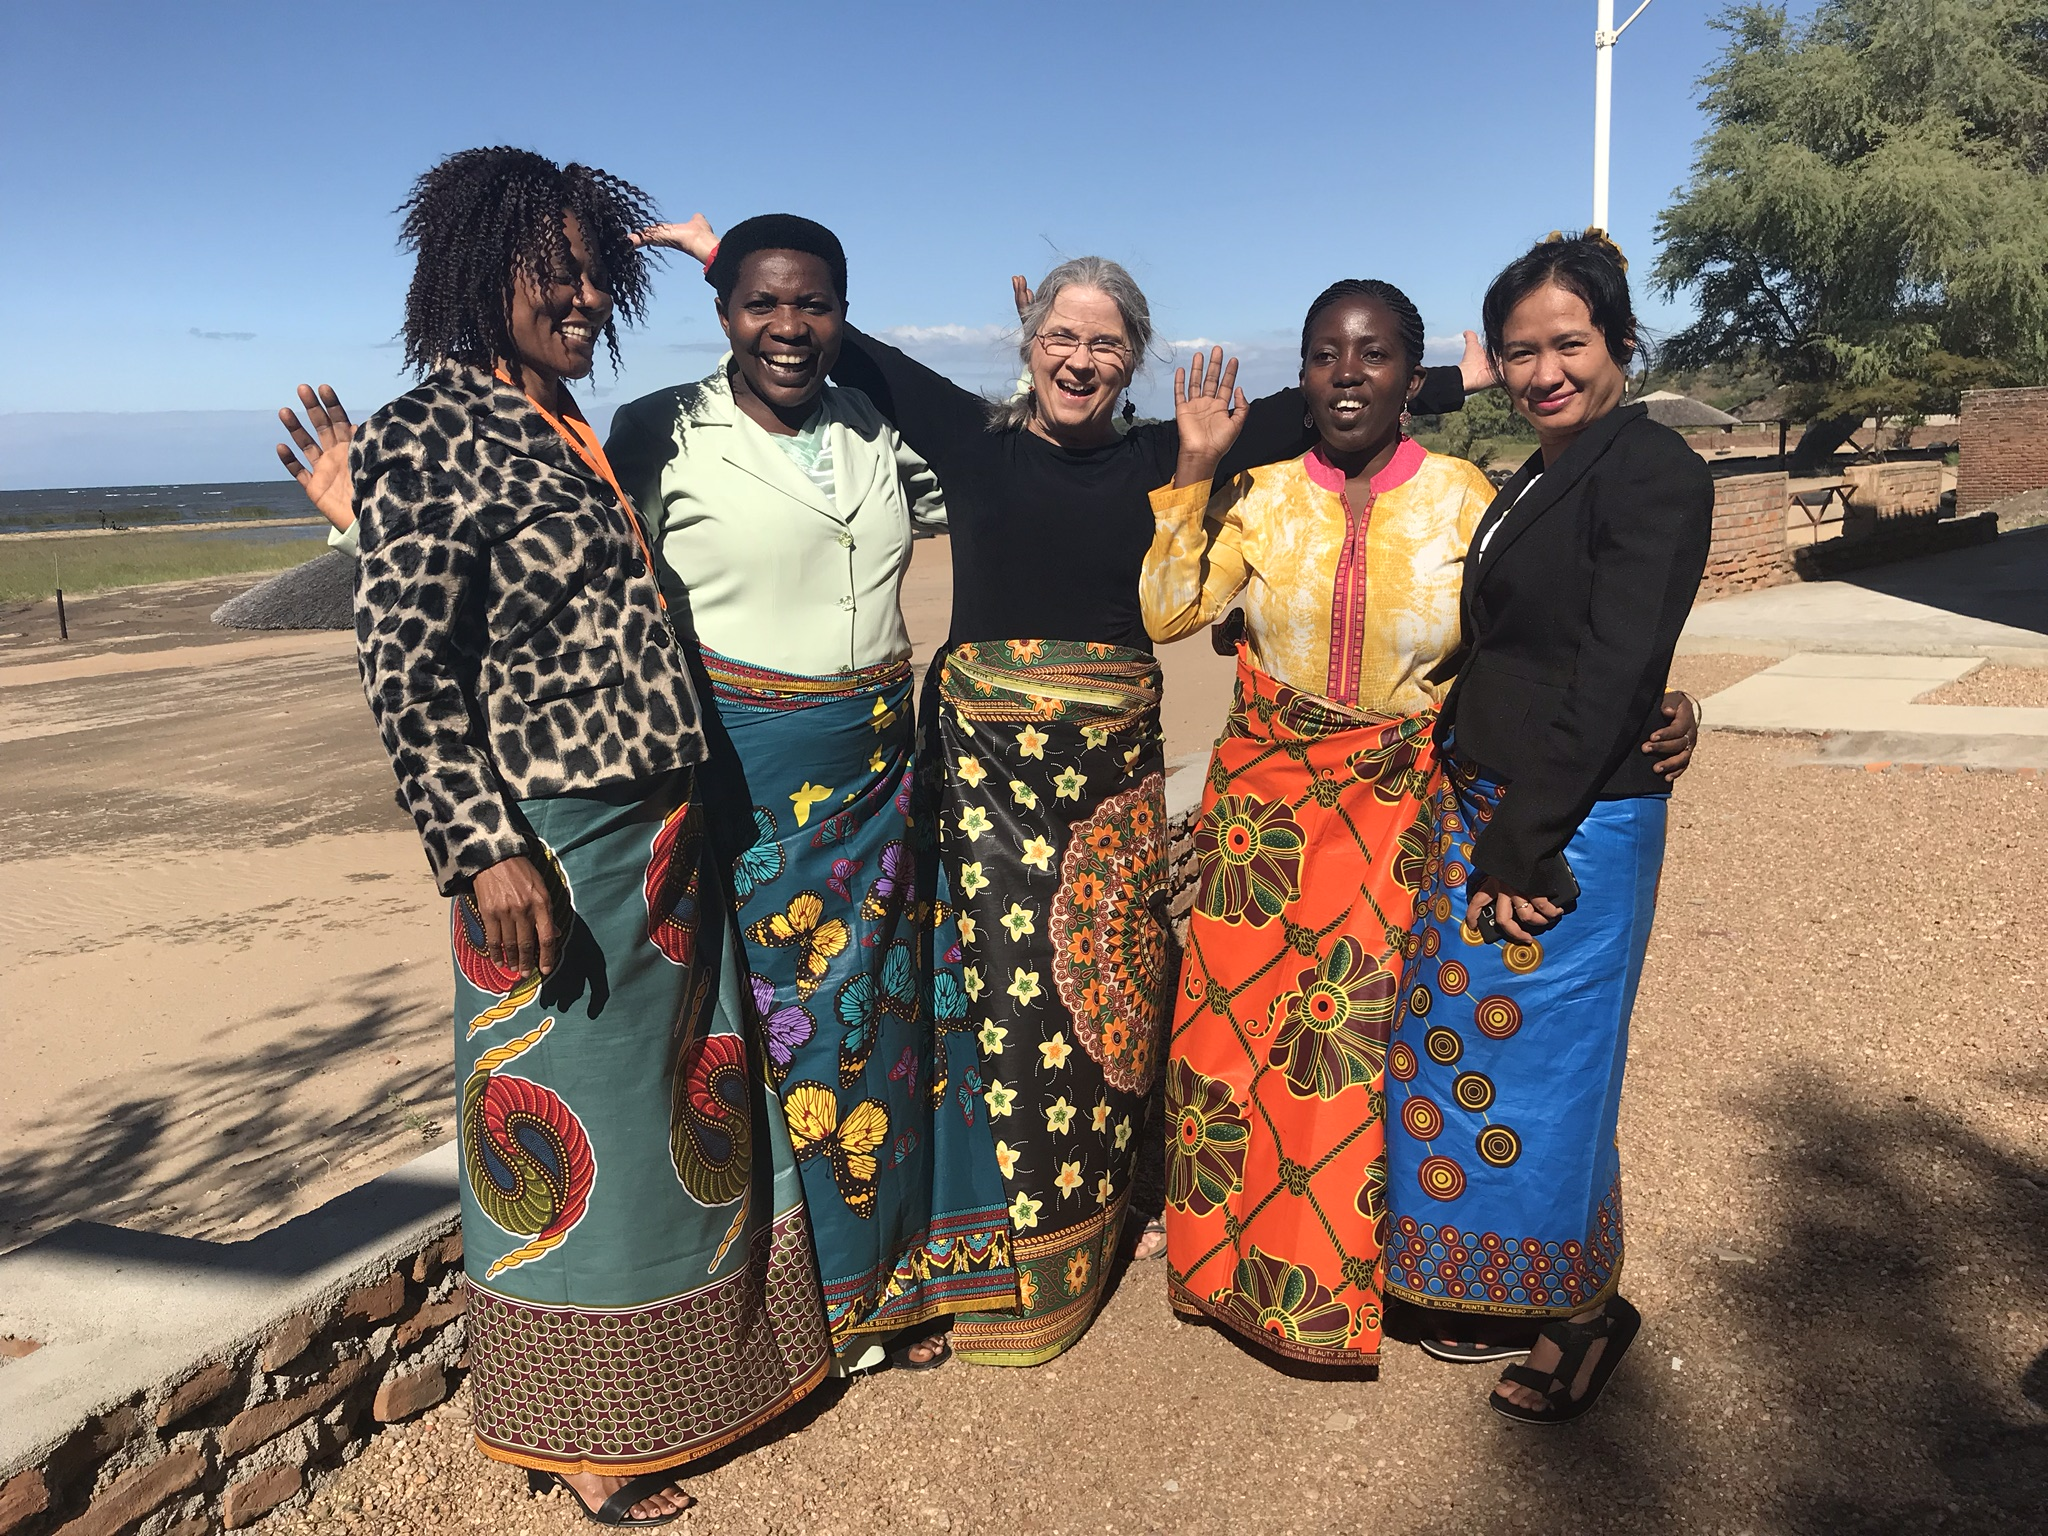 Debbie Dortzbach of World Relief with women leaders she taught at a Families for Life Summit in 2018 on Lake Malawi. The participants are leaders from Burundi, Rwanda, Malawi, and Cambodia.